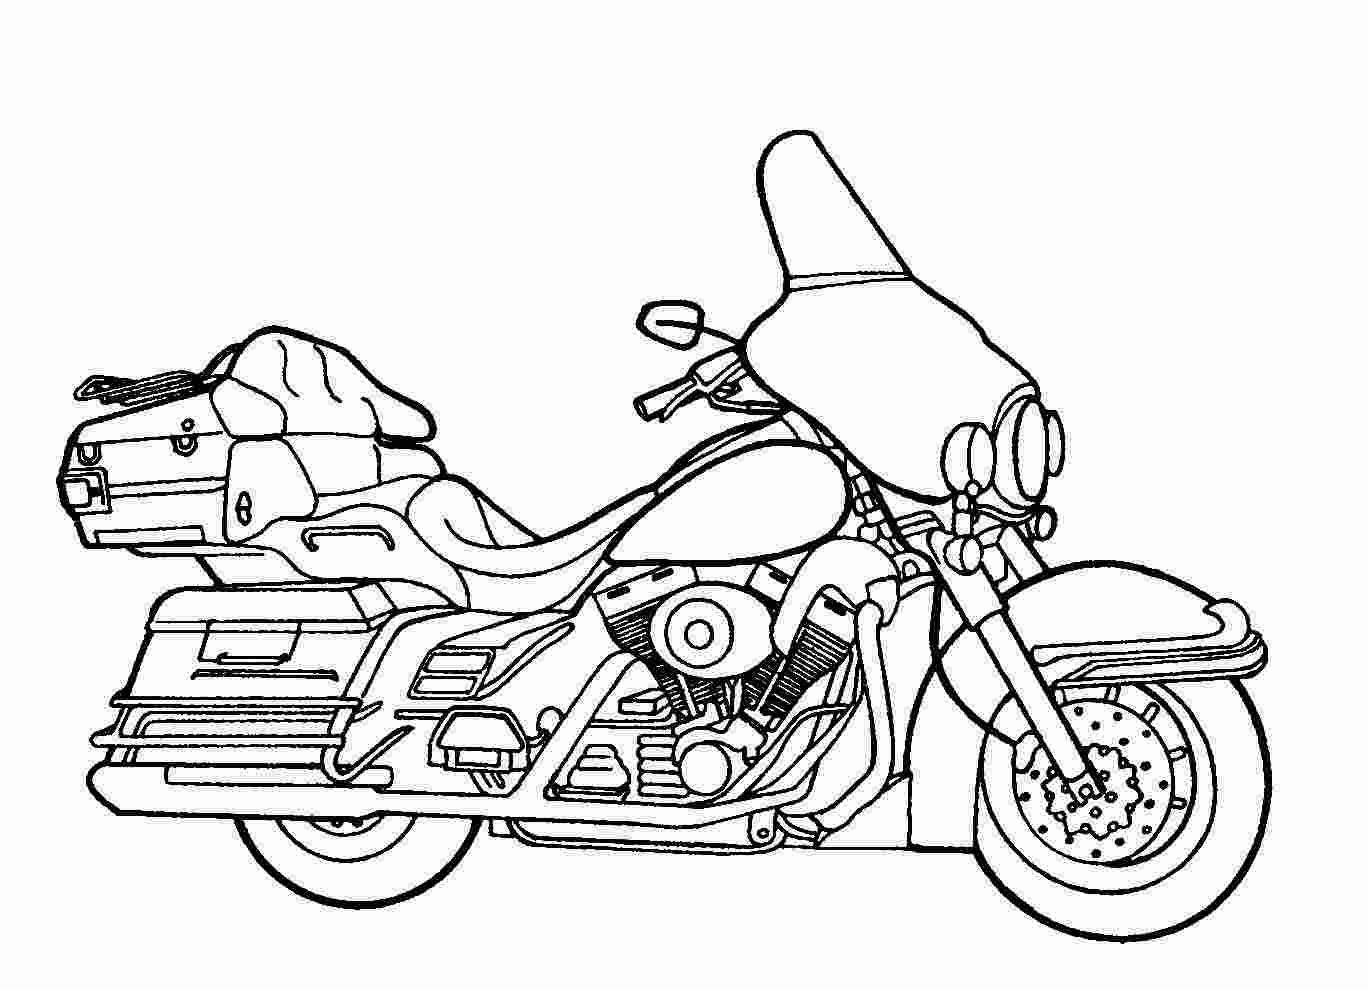 coloring motorcycle pages colour drawing free hd wallpapers 2015